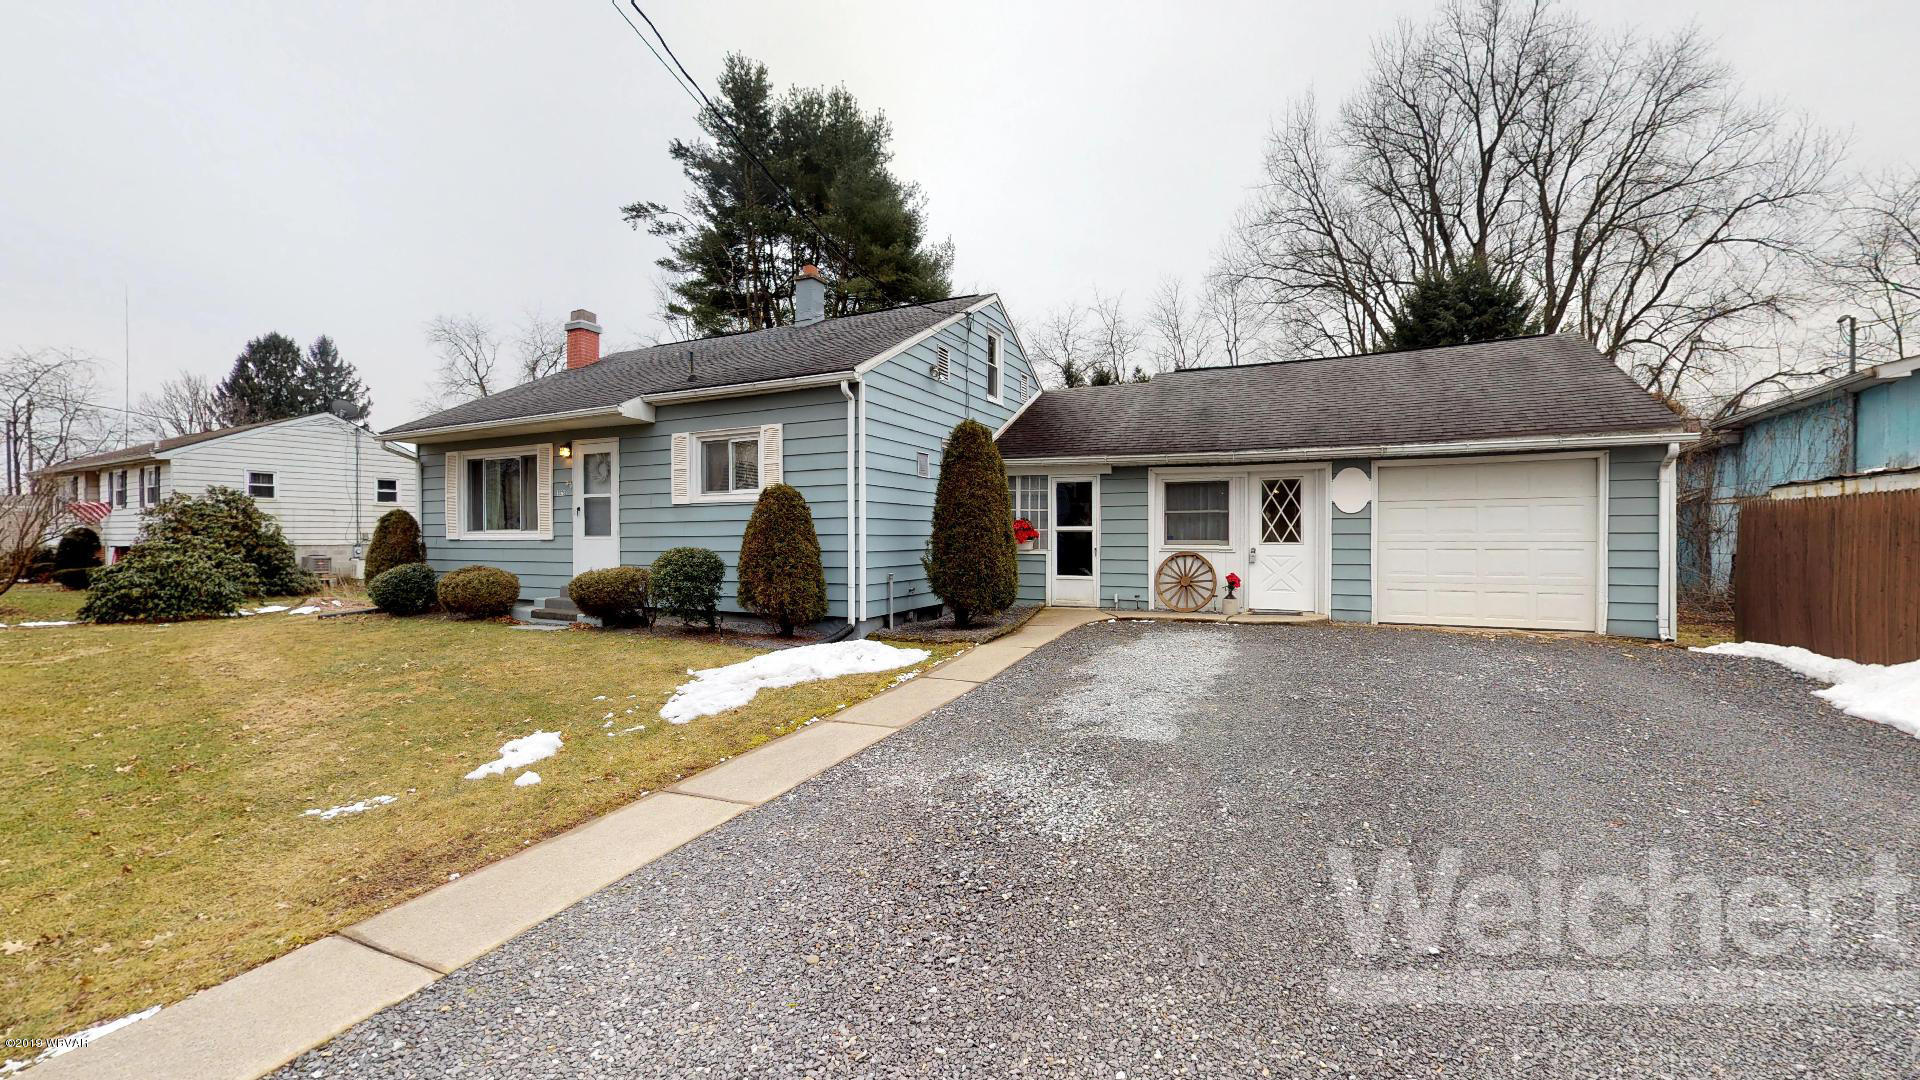 3575 PINE STREET,Cogan Station,PA 17728,2 Bedrooms Bedrooms,1 BathroomBathrooms,Residential,PINE,WB-86399